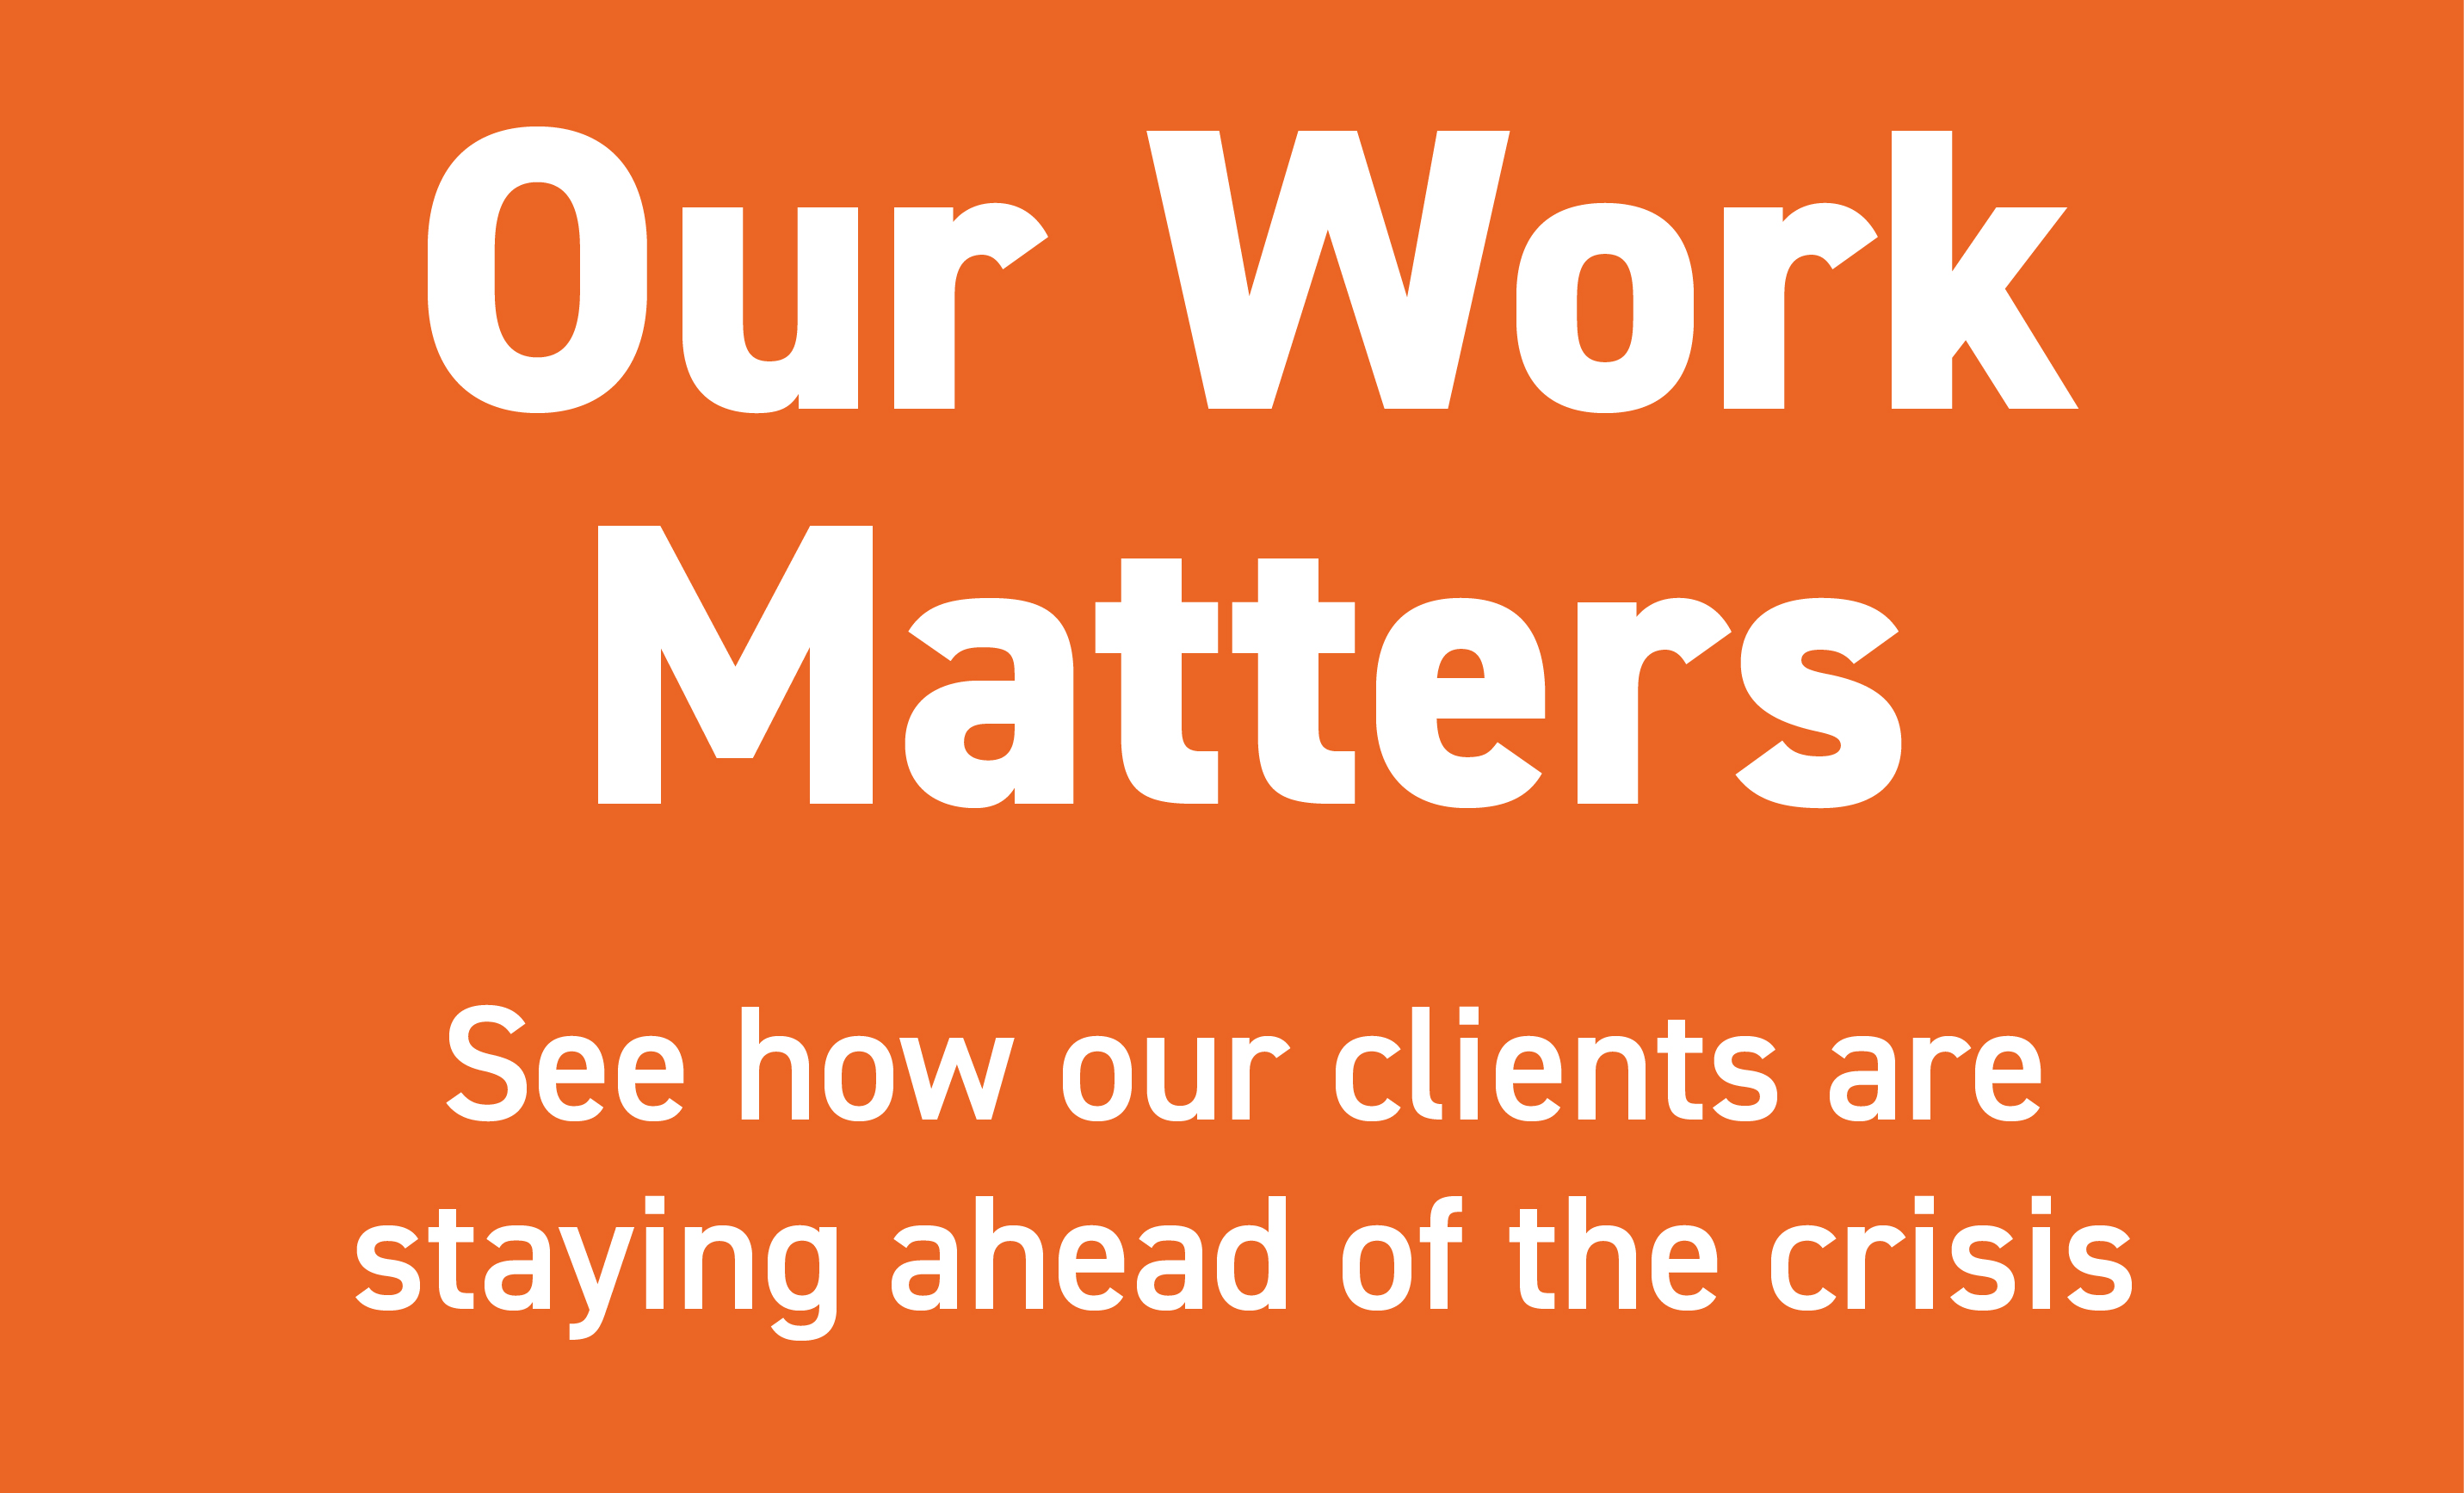 Our Work Matters